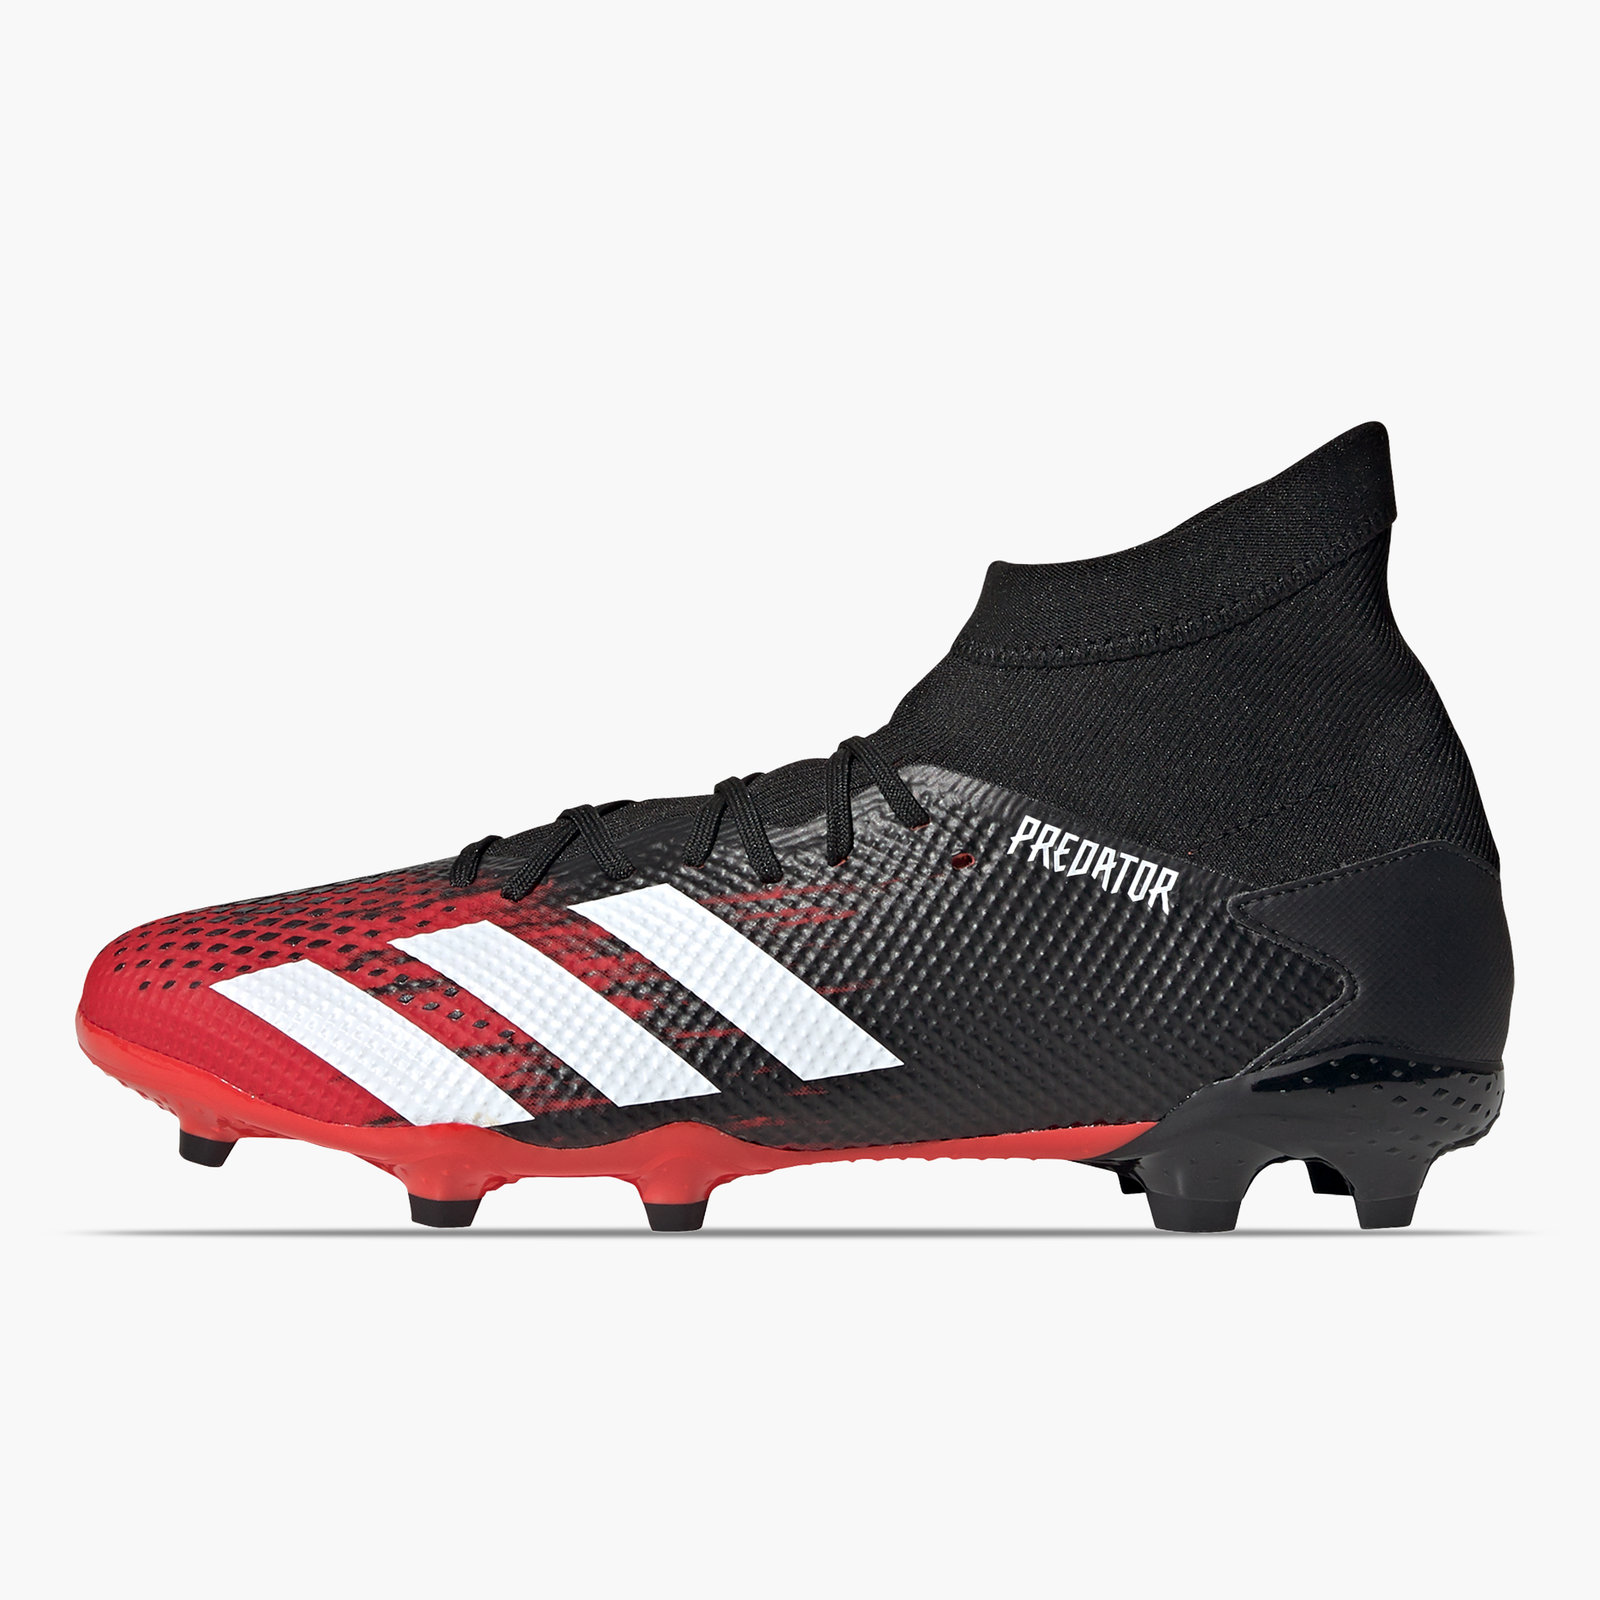 Predator 20.3 Mens FG Football Boots